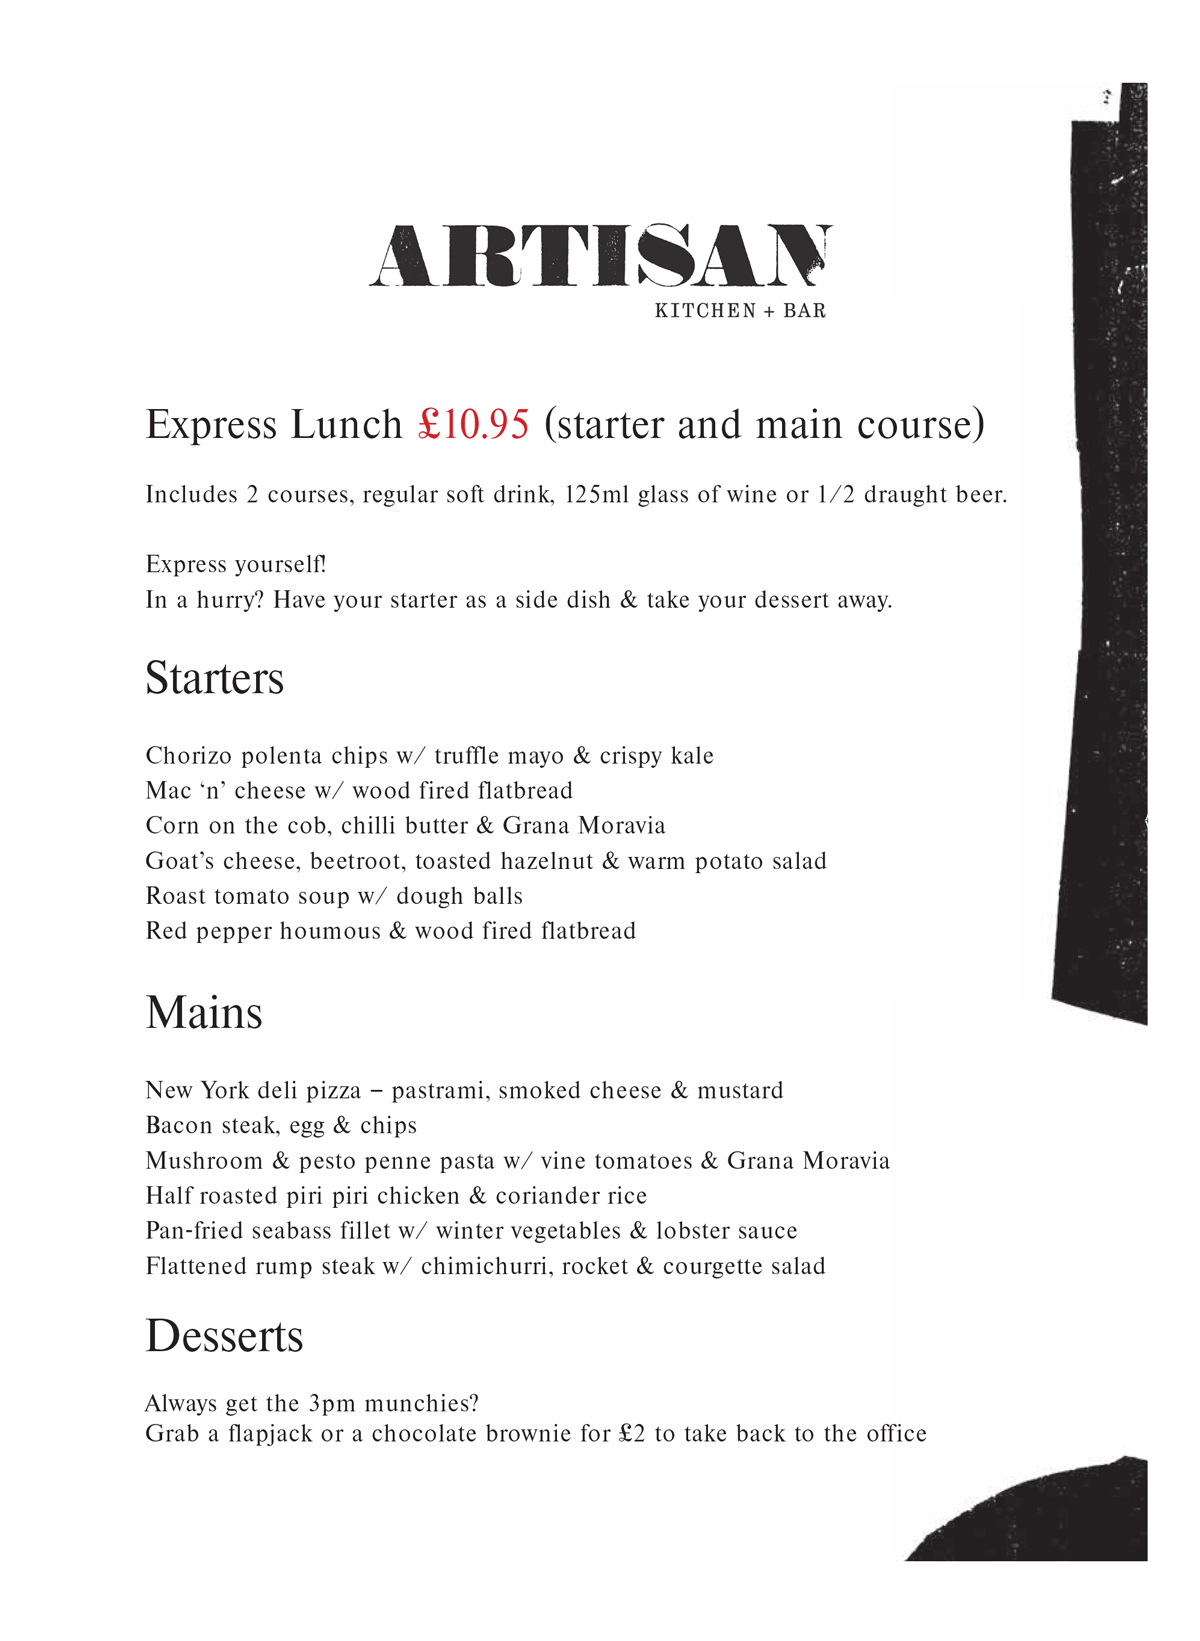 20180129 Artisan Express Main Menu Feb 18 1 1